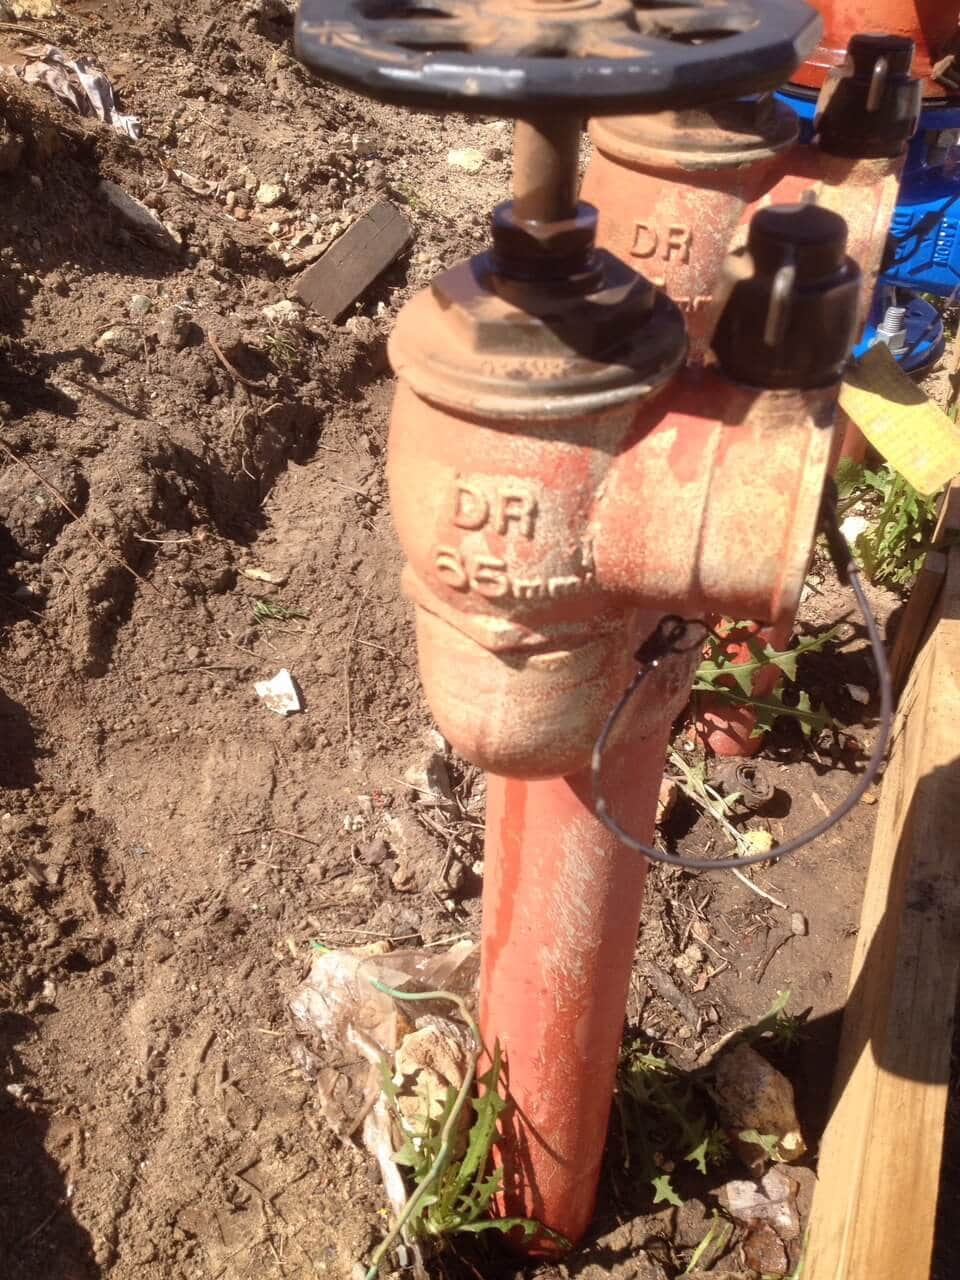 Everyday Plumbers Fire Hydrants Repair and Monitoring - Front Controls Close View2229